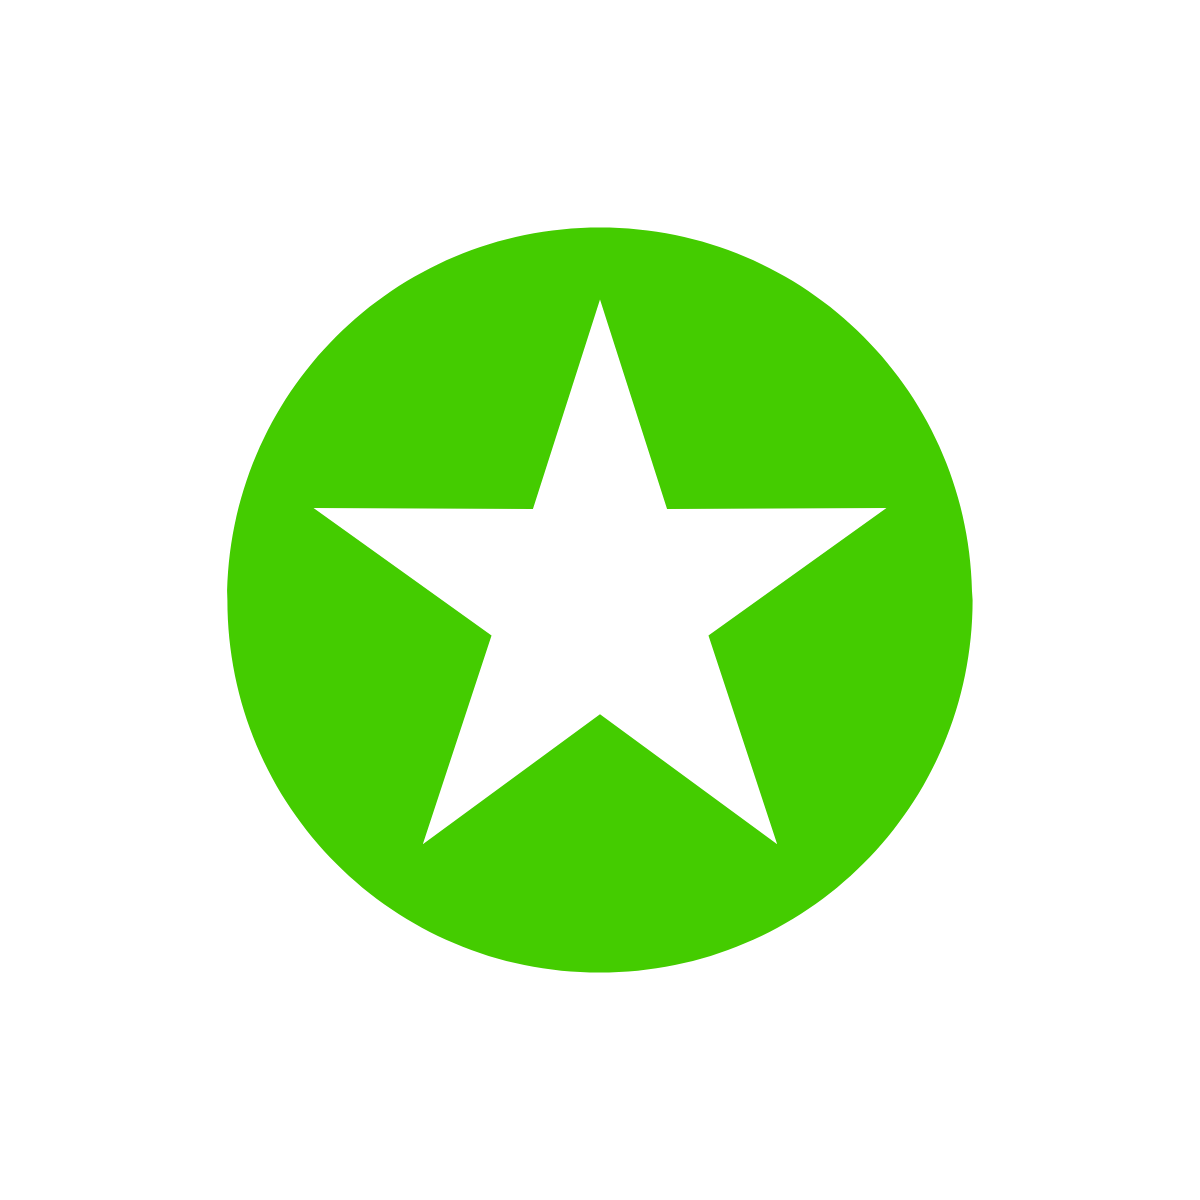 line drawing of a star on a green background